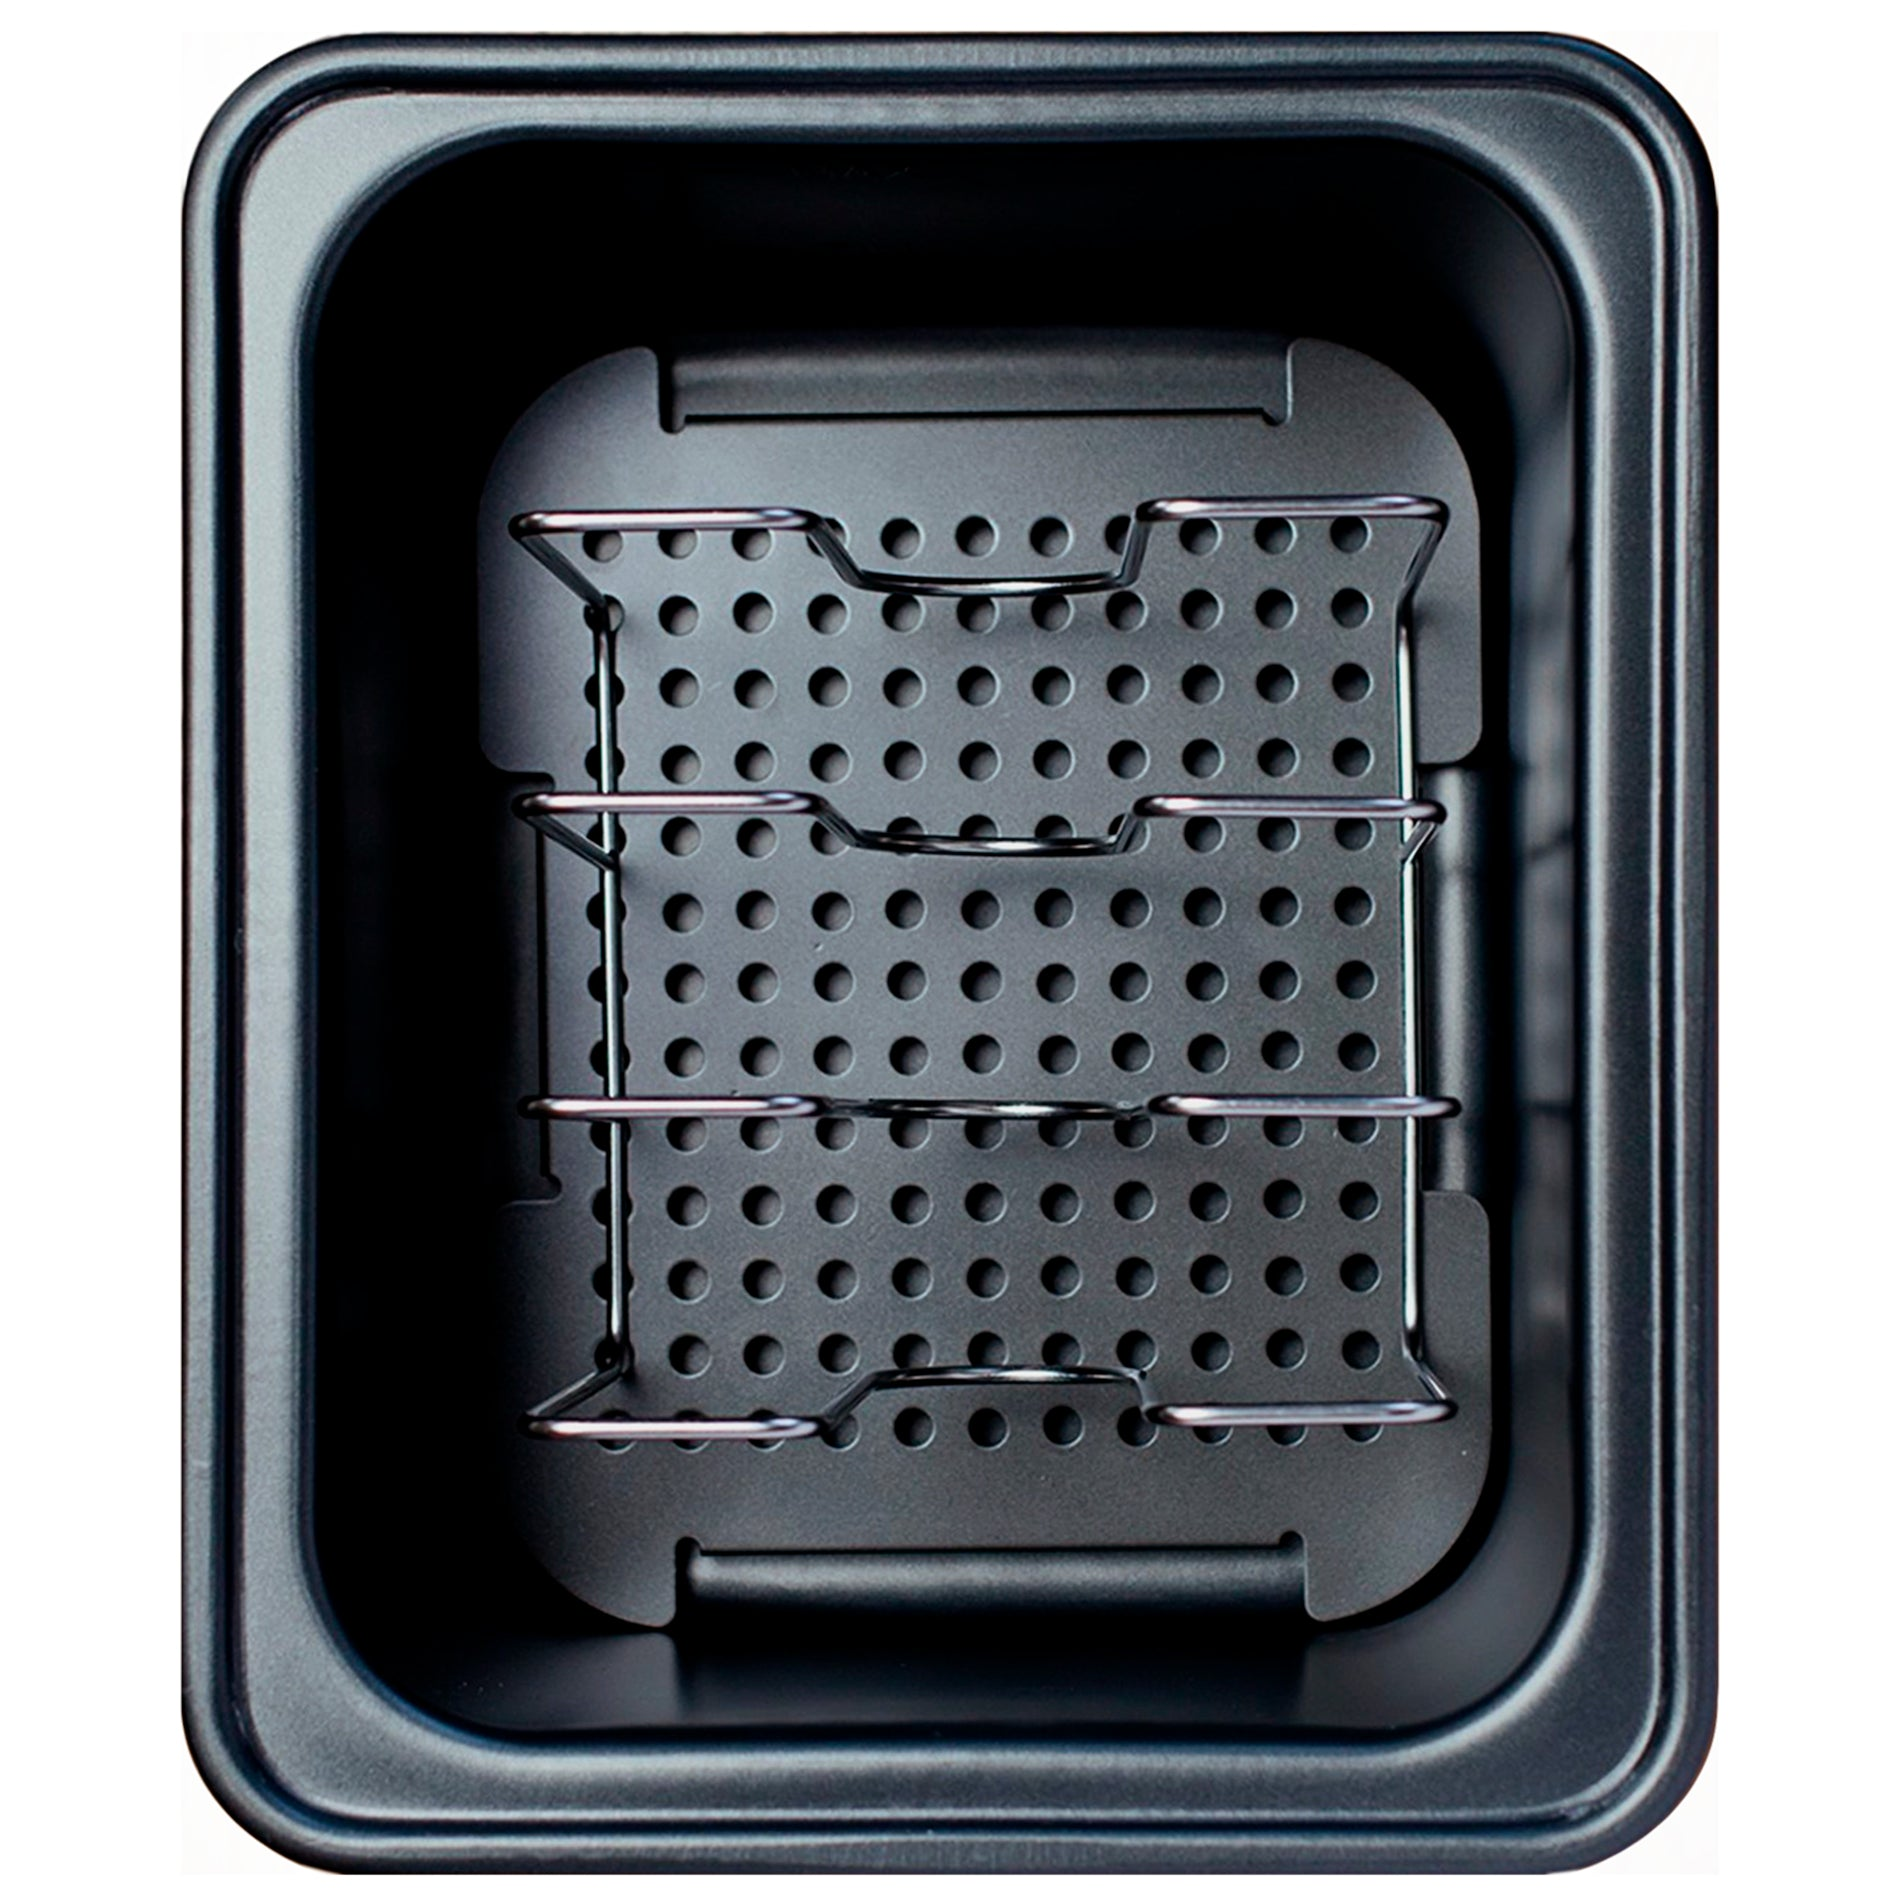 Top view of SousVide Supreme Demi Water Oven perforated grill and pouch rack placement